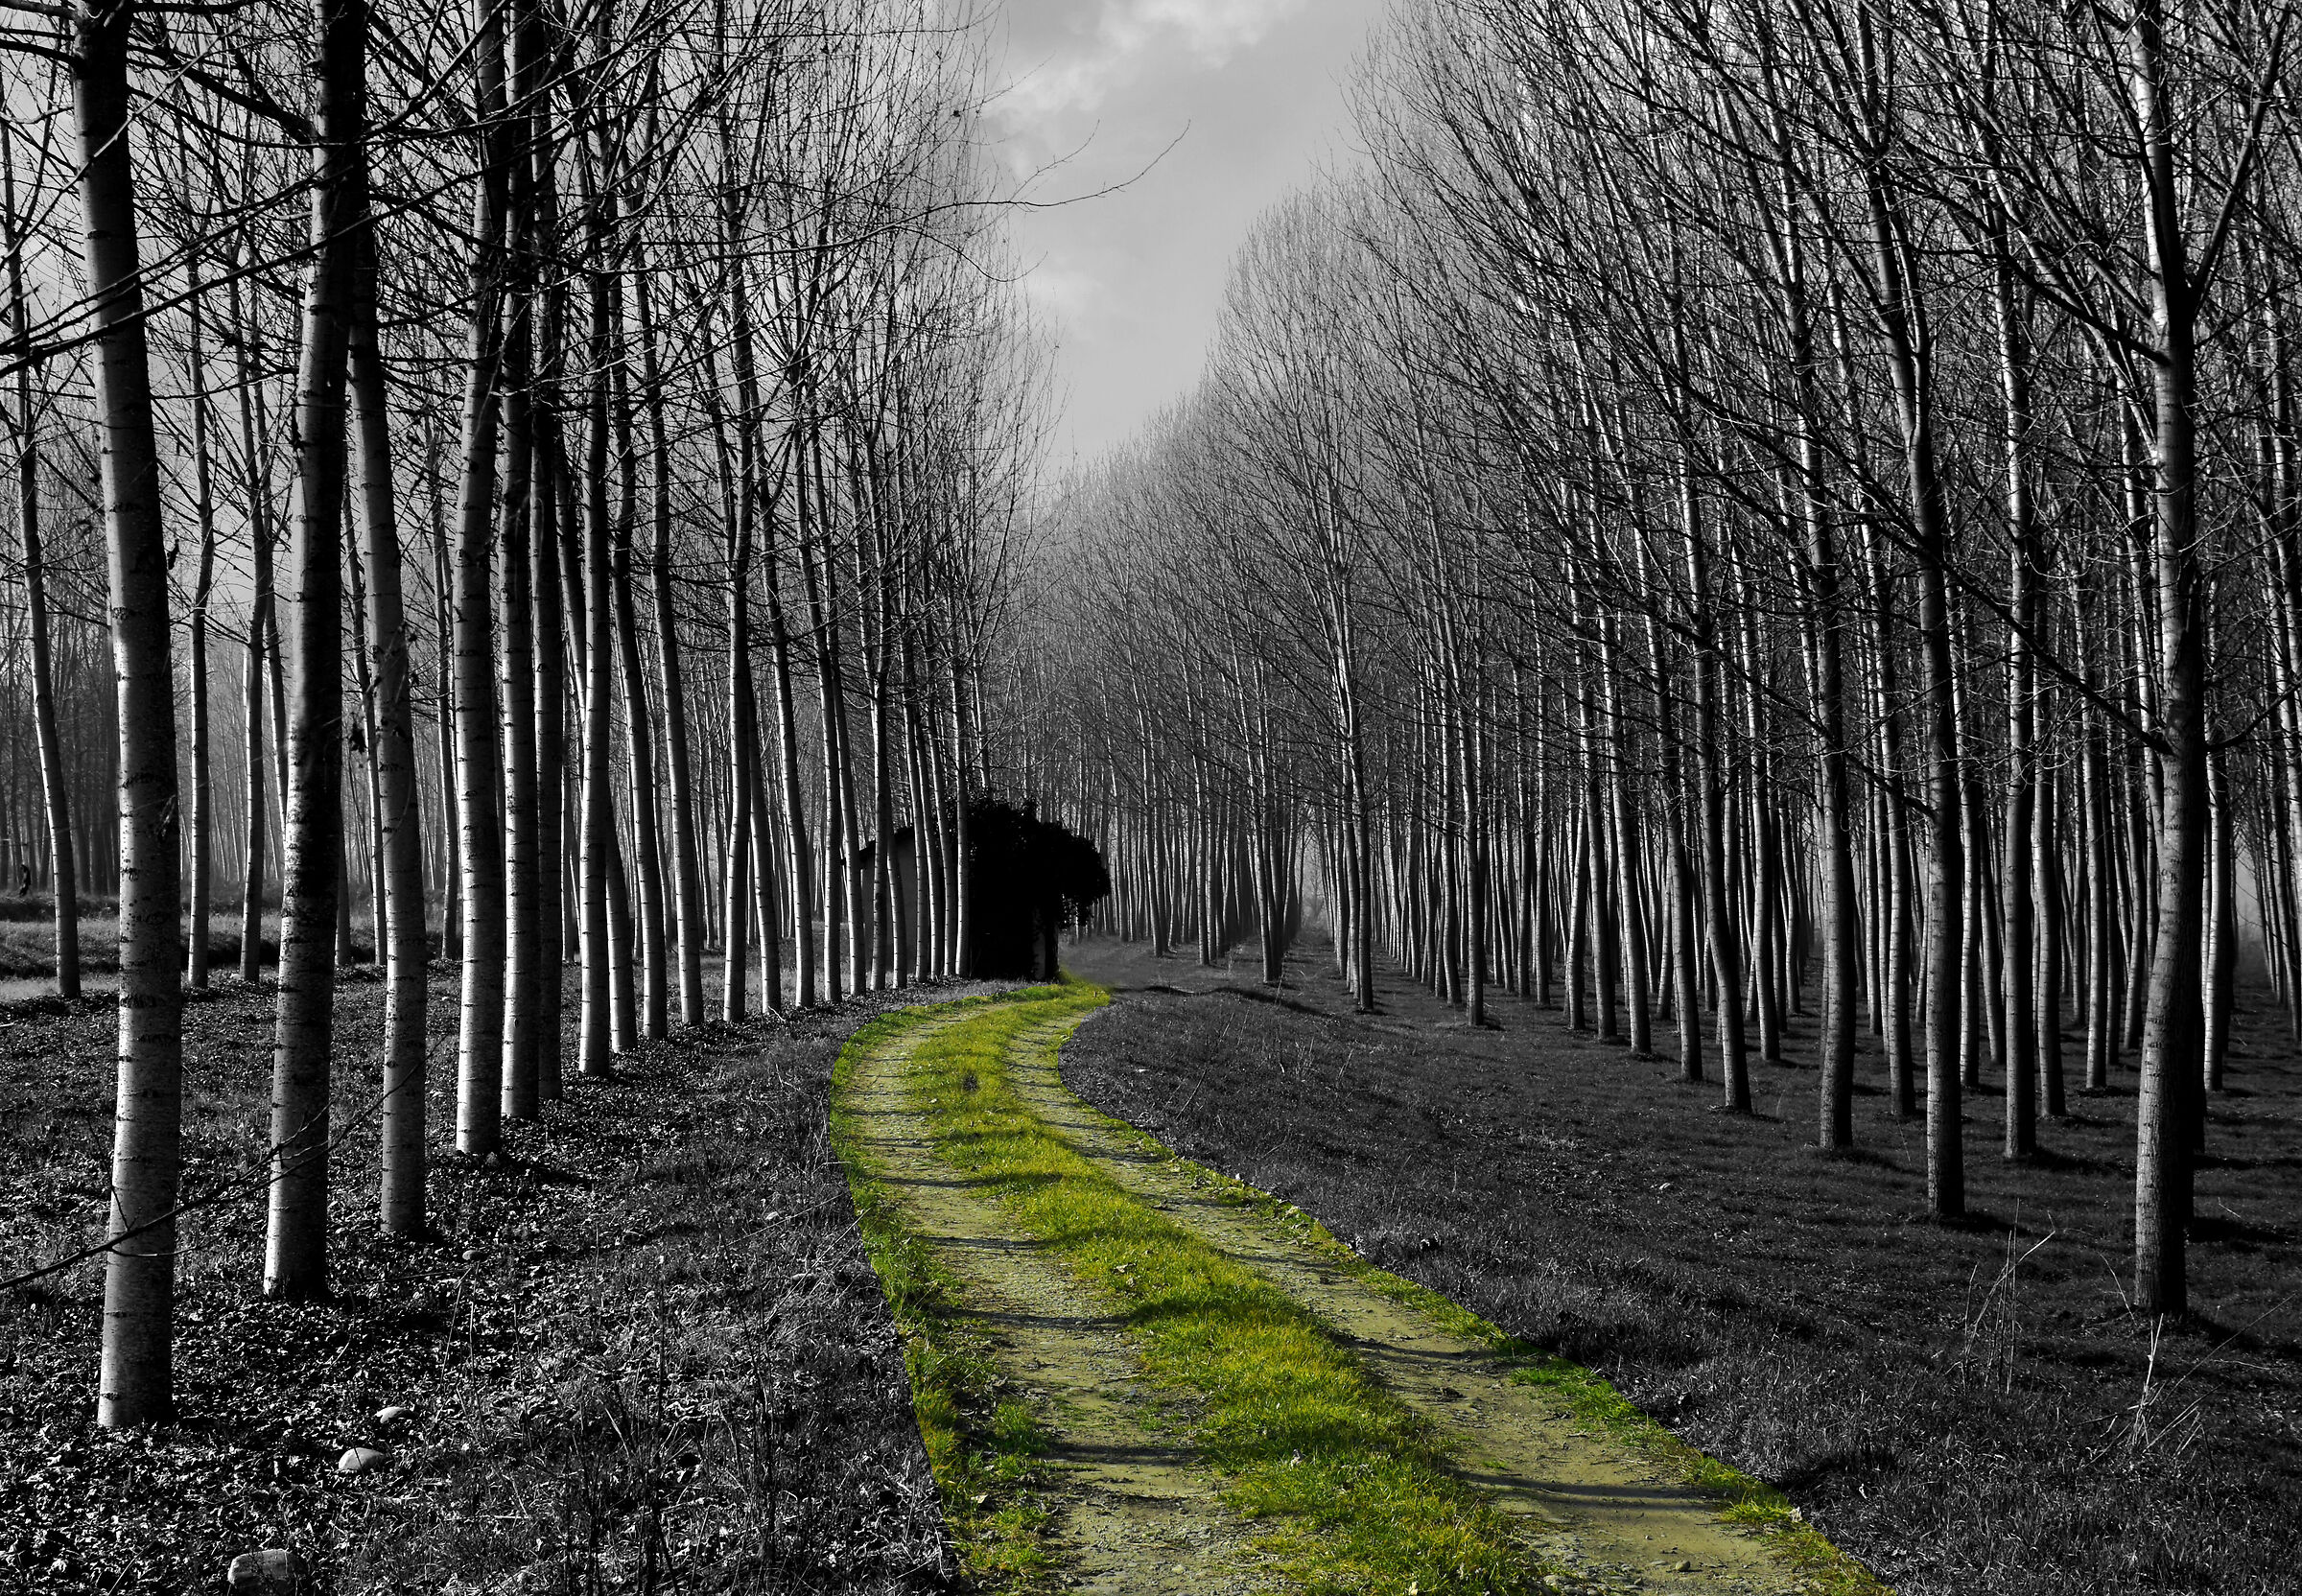 There's a road in the woods......